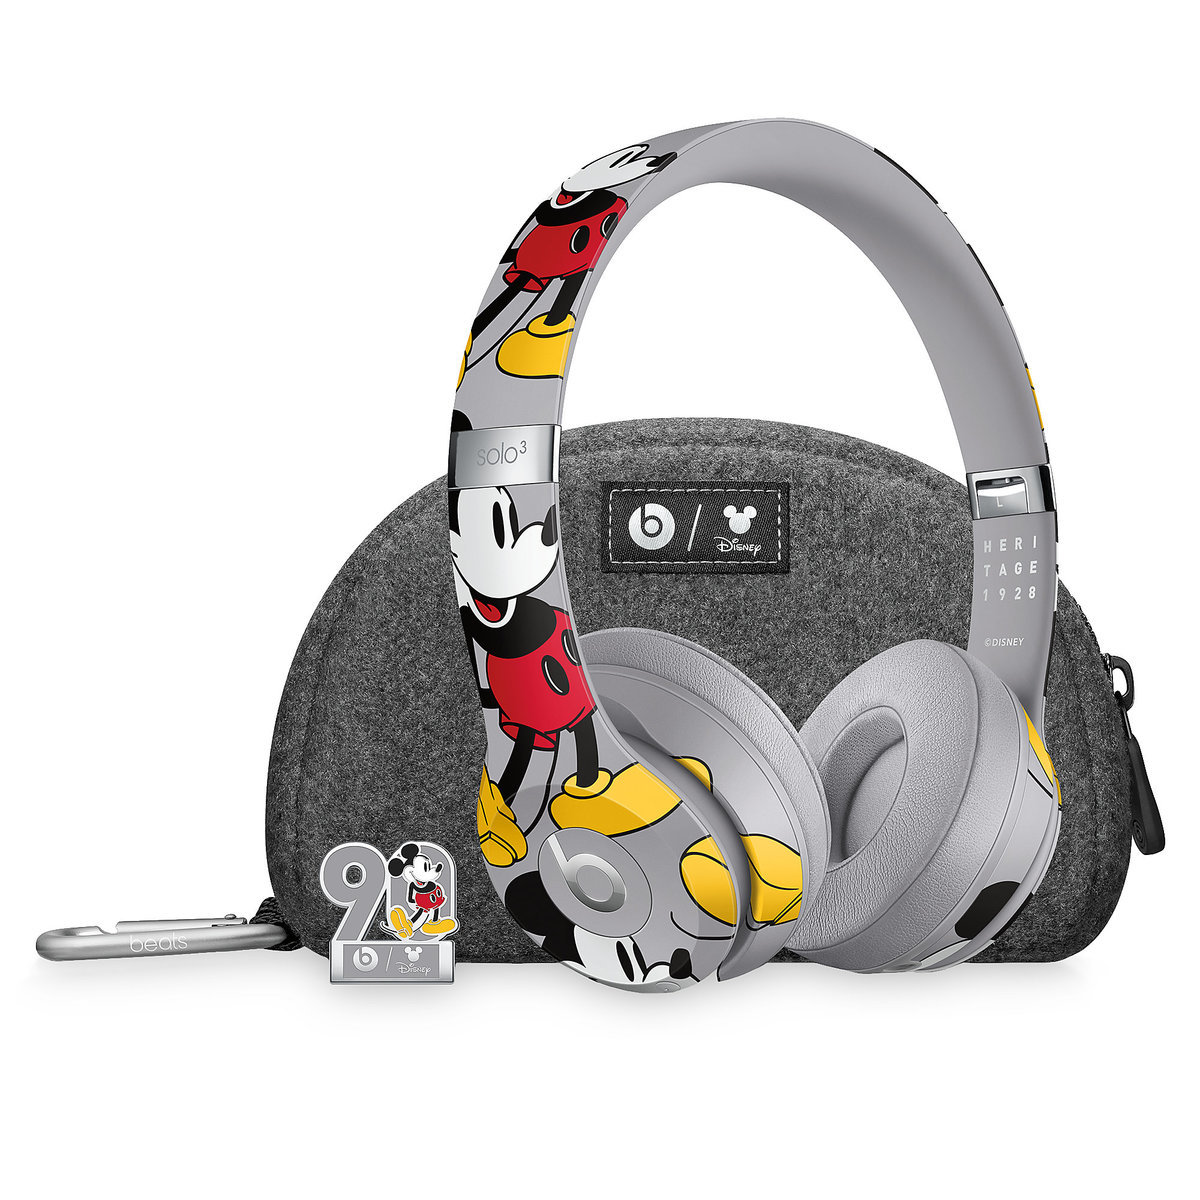 c2605443f53 Product Image of Beats Solo3 Wireless Headphones - Mickey's 90th  Anniversary Edition - Gray # 1